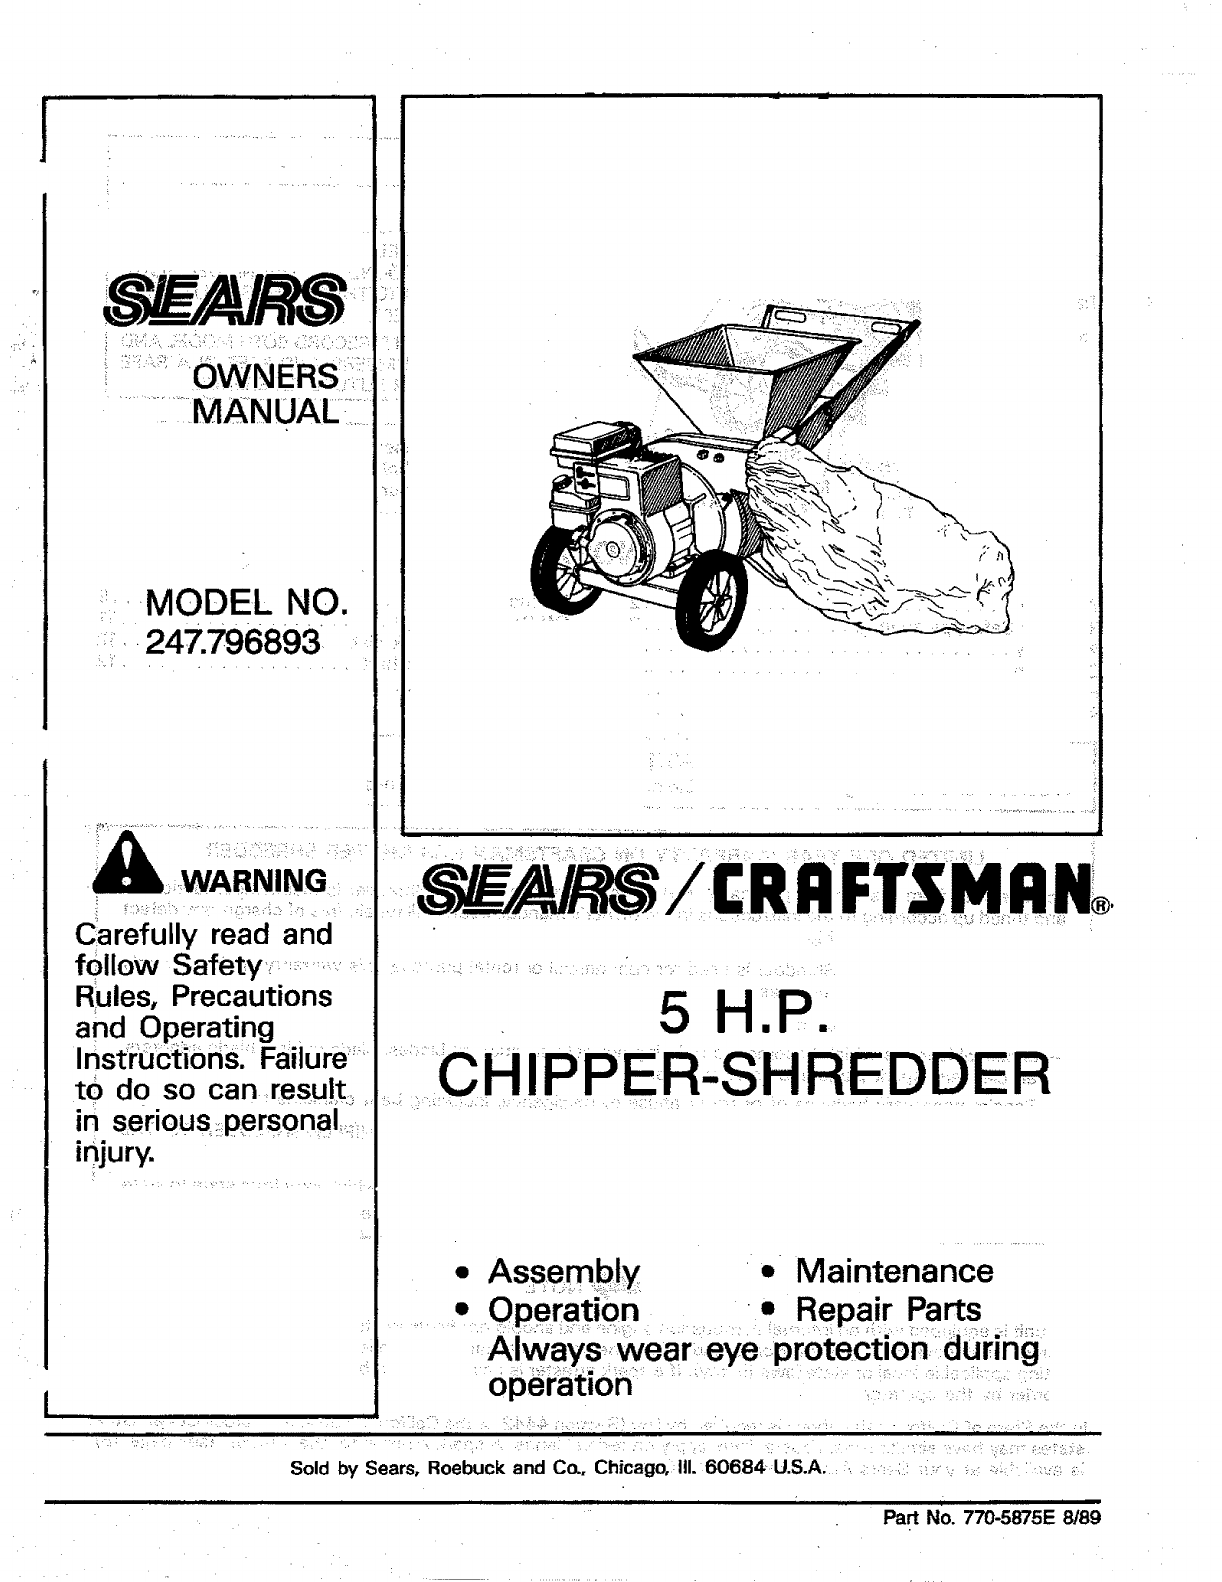 User Manual 5 H P Chipper Shredder